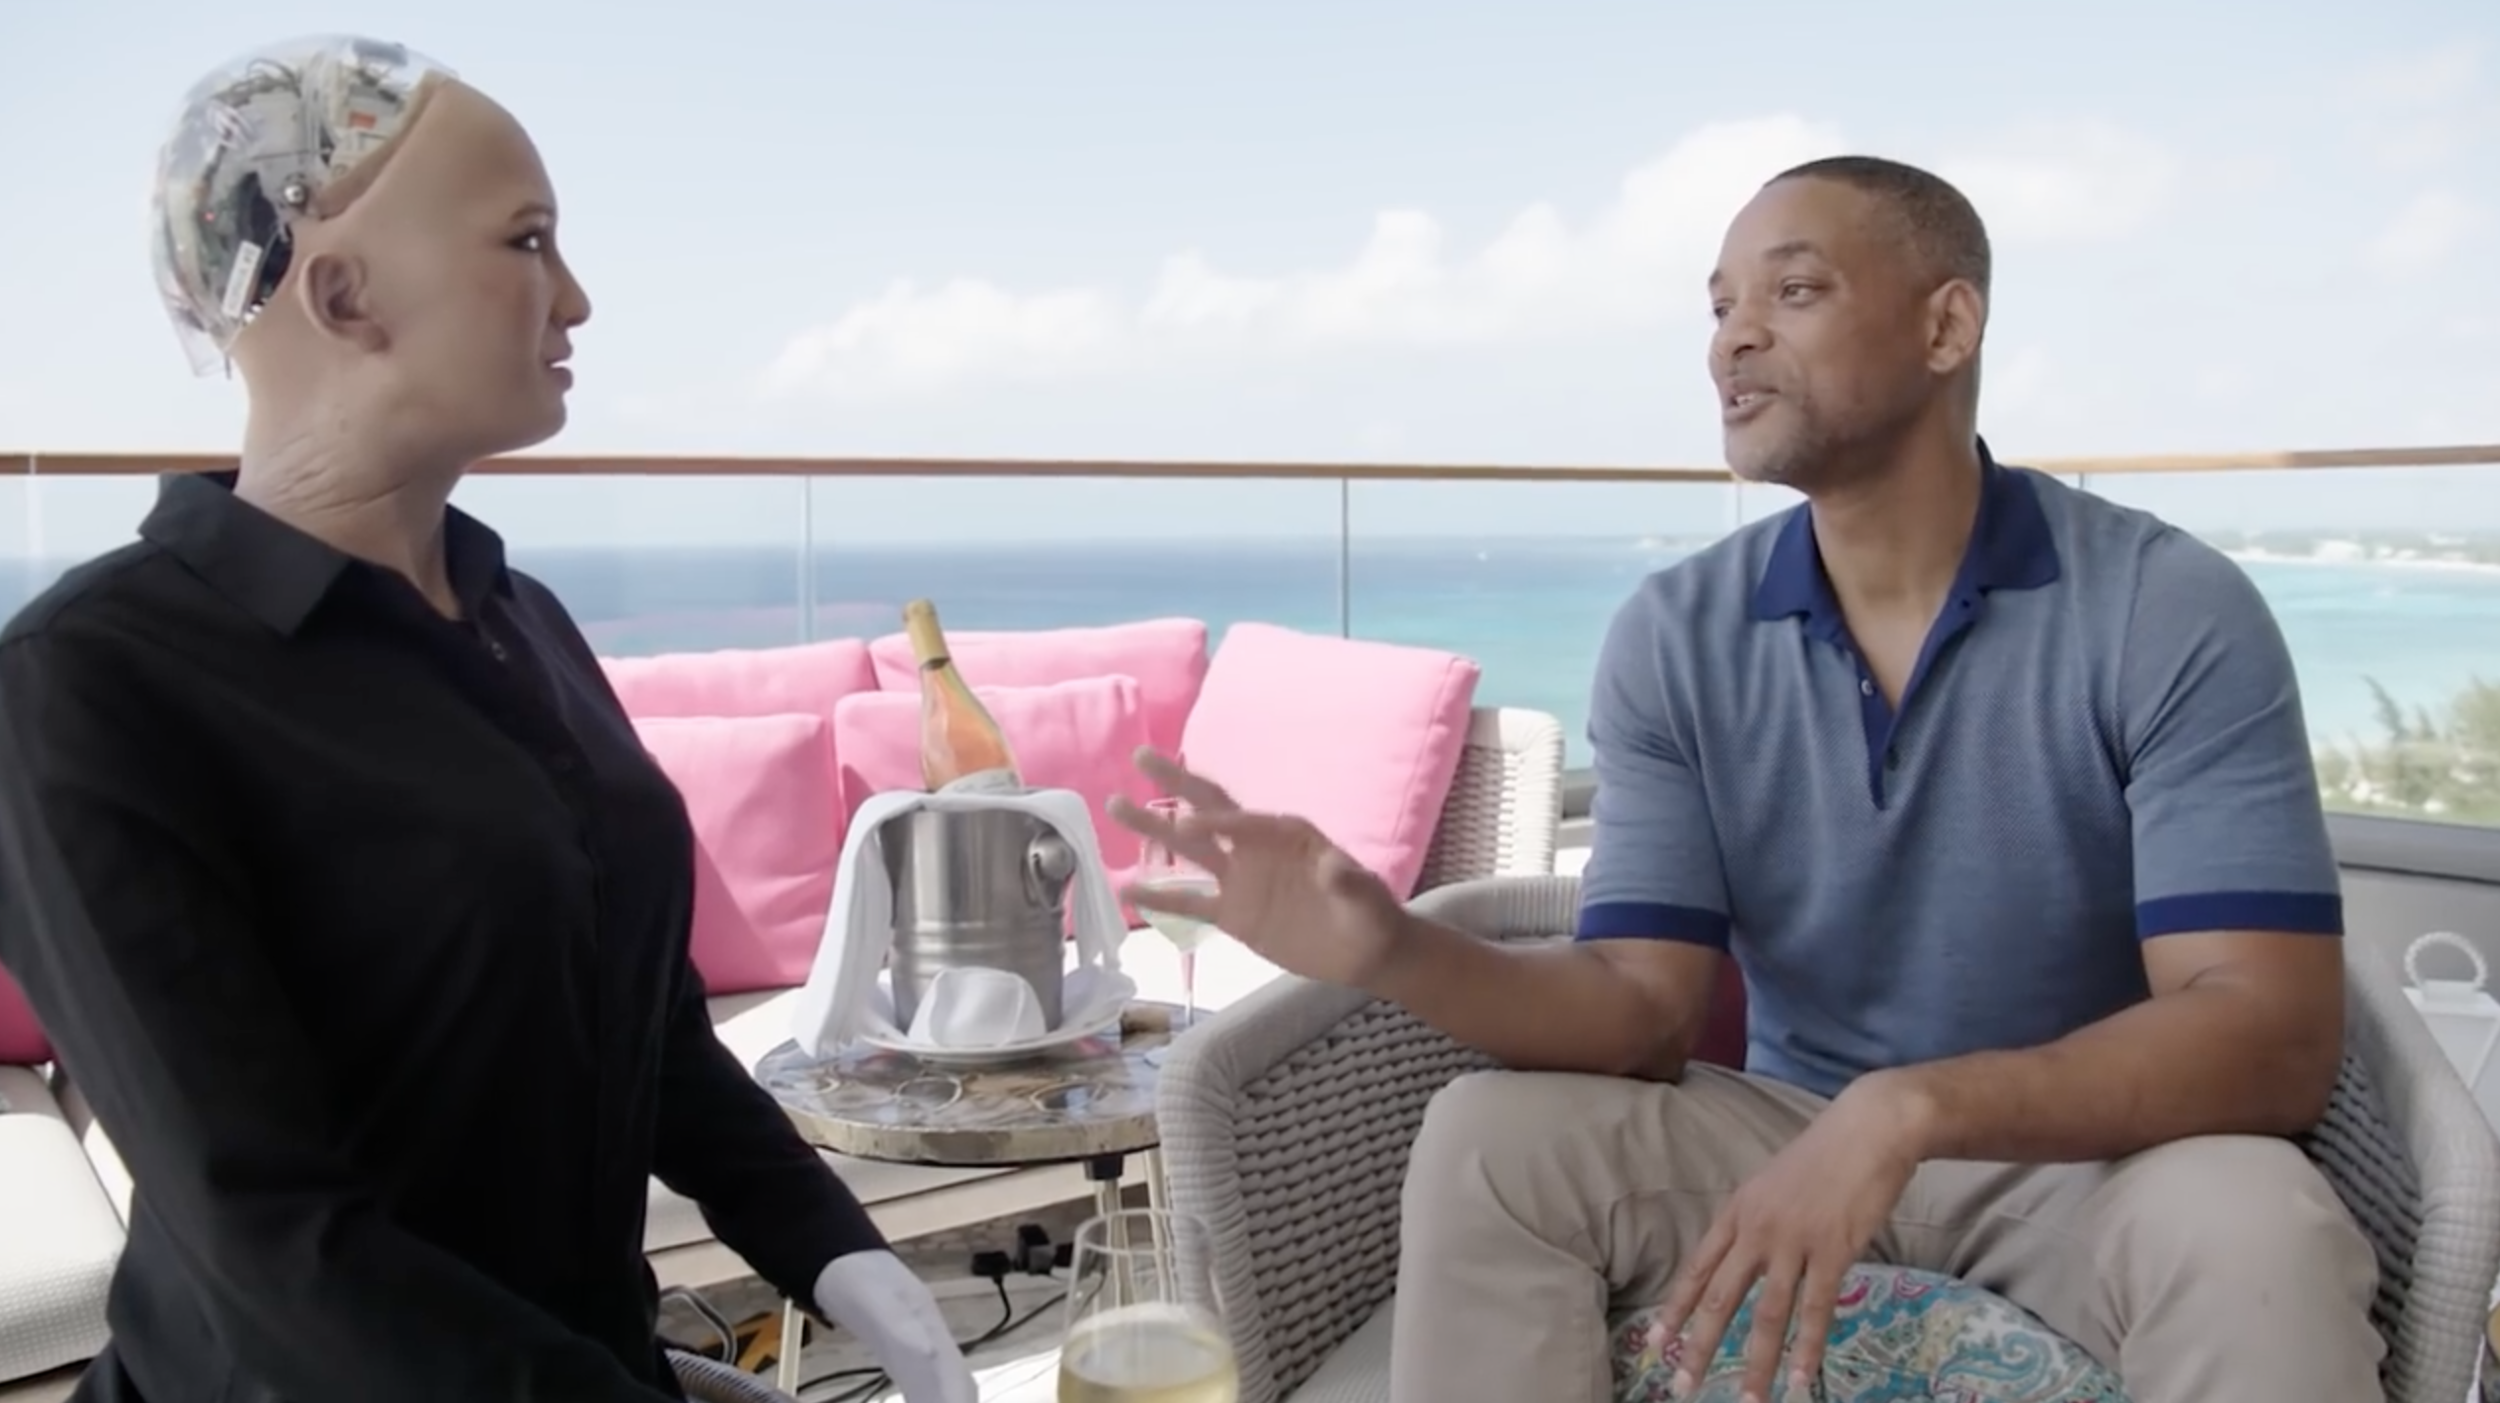 MOST UNCANNY: Will Smith Tries Online Dating